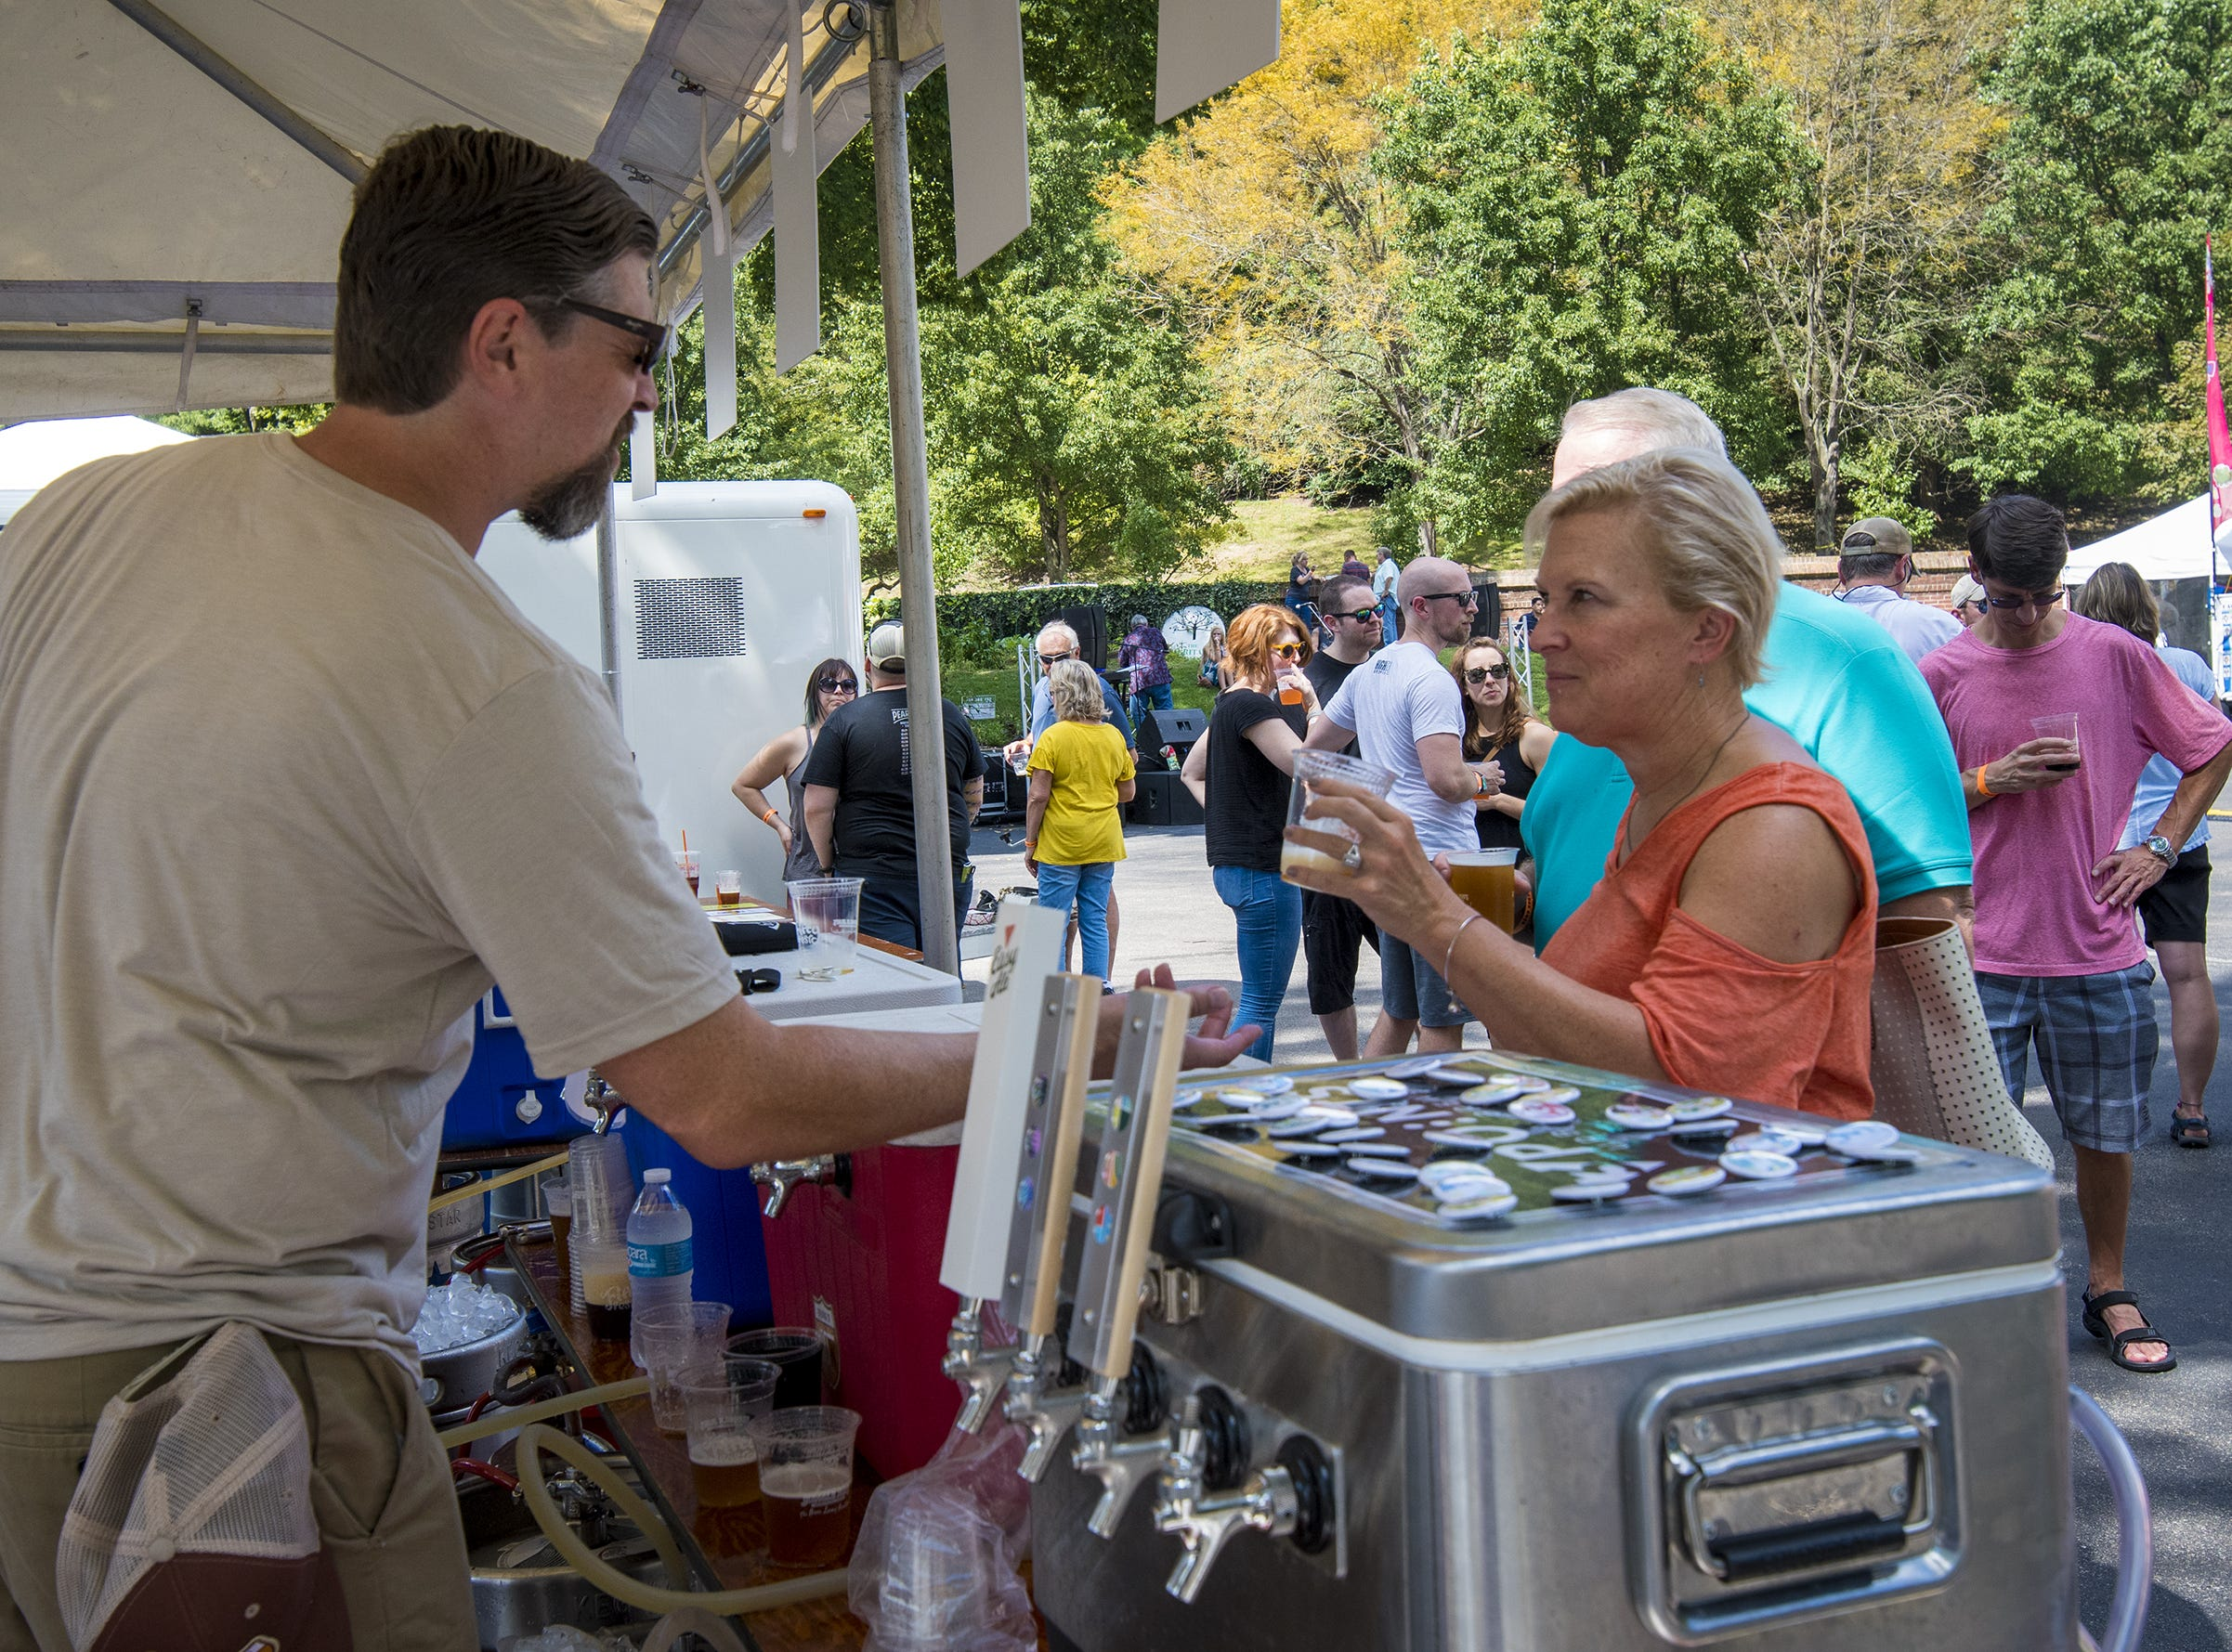 Beers from many local breweries are available during Fifty Fest at 50 West Brewing Saturday, September 15, 2018 in Cincinnati, Ohio.